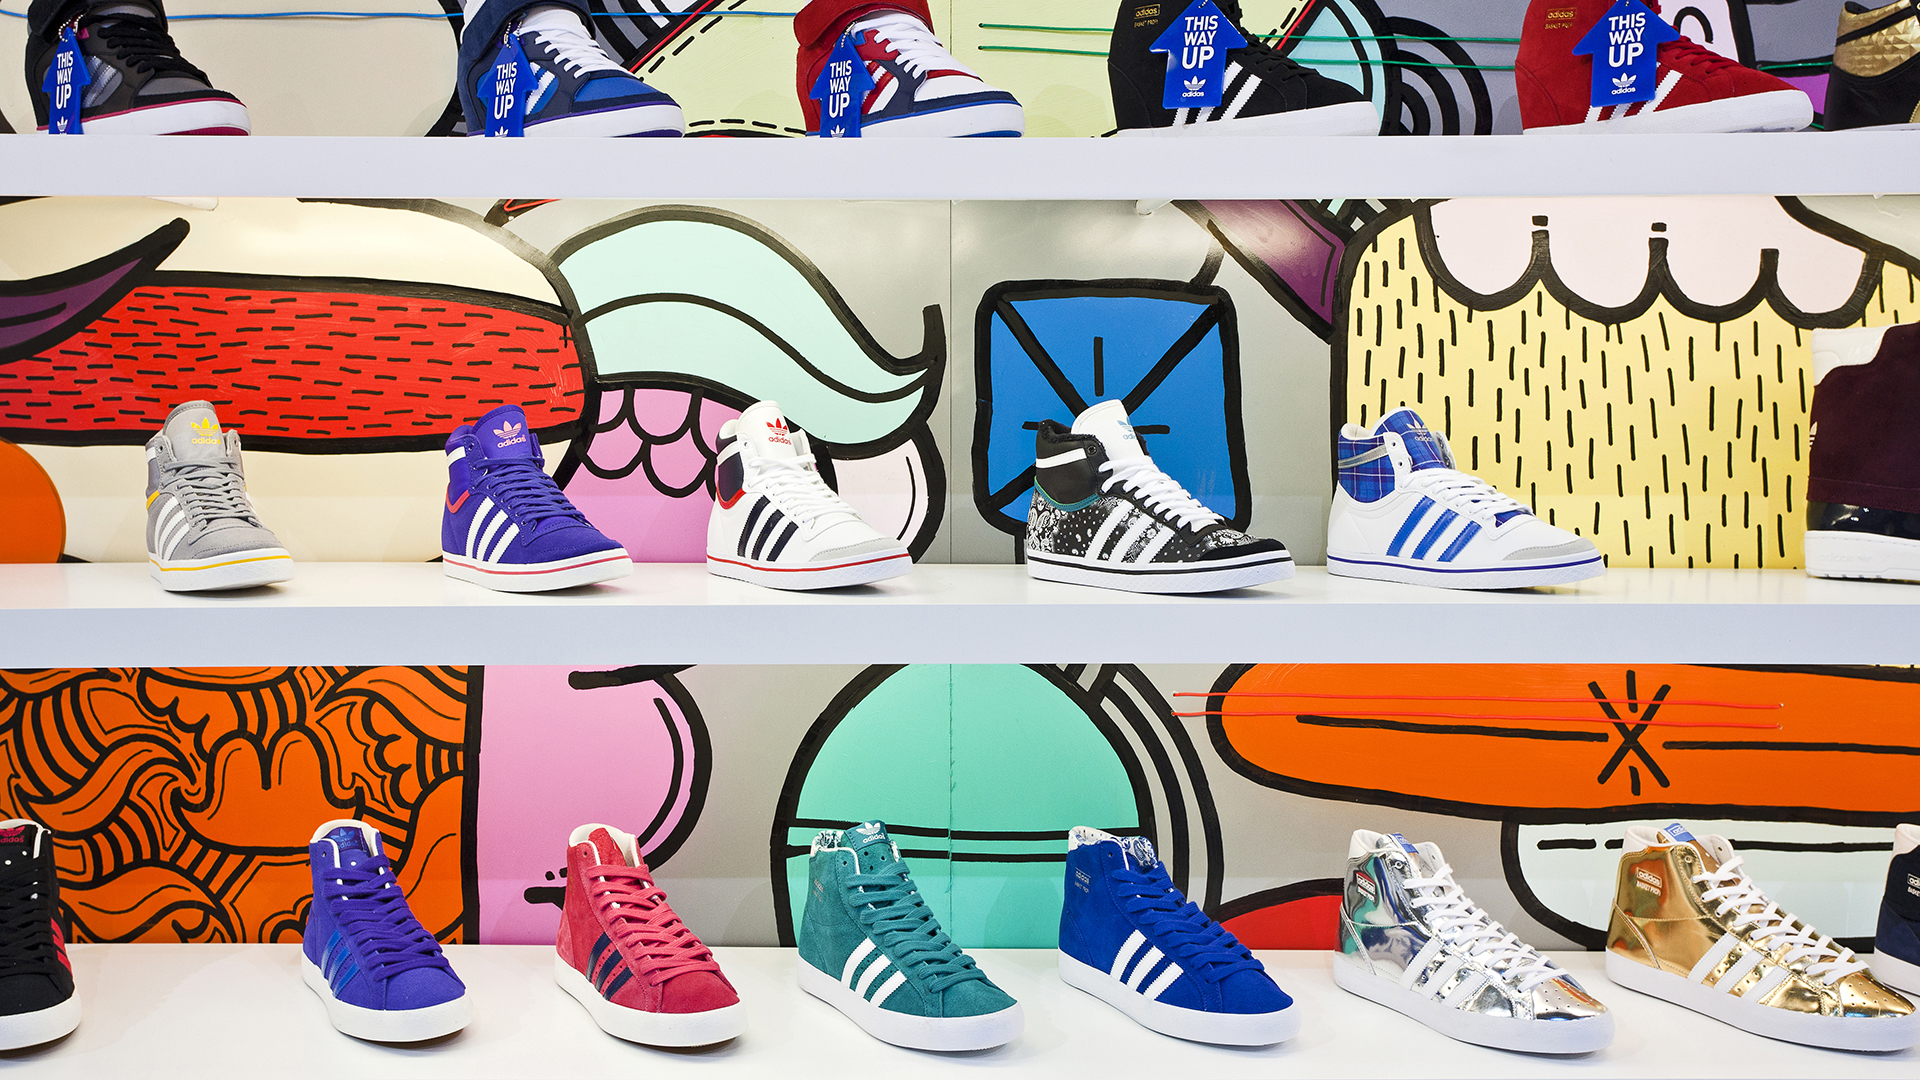 Dart stages the adidas fair stand at the B&B Winter 2013